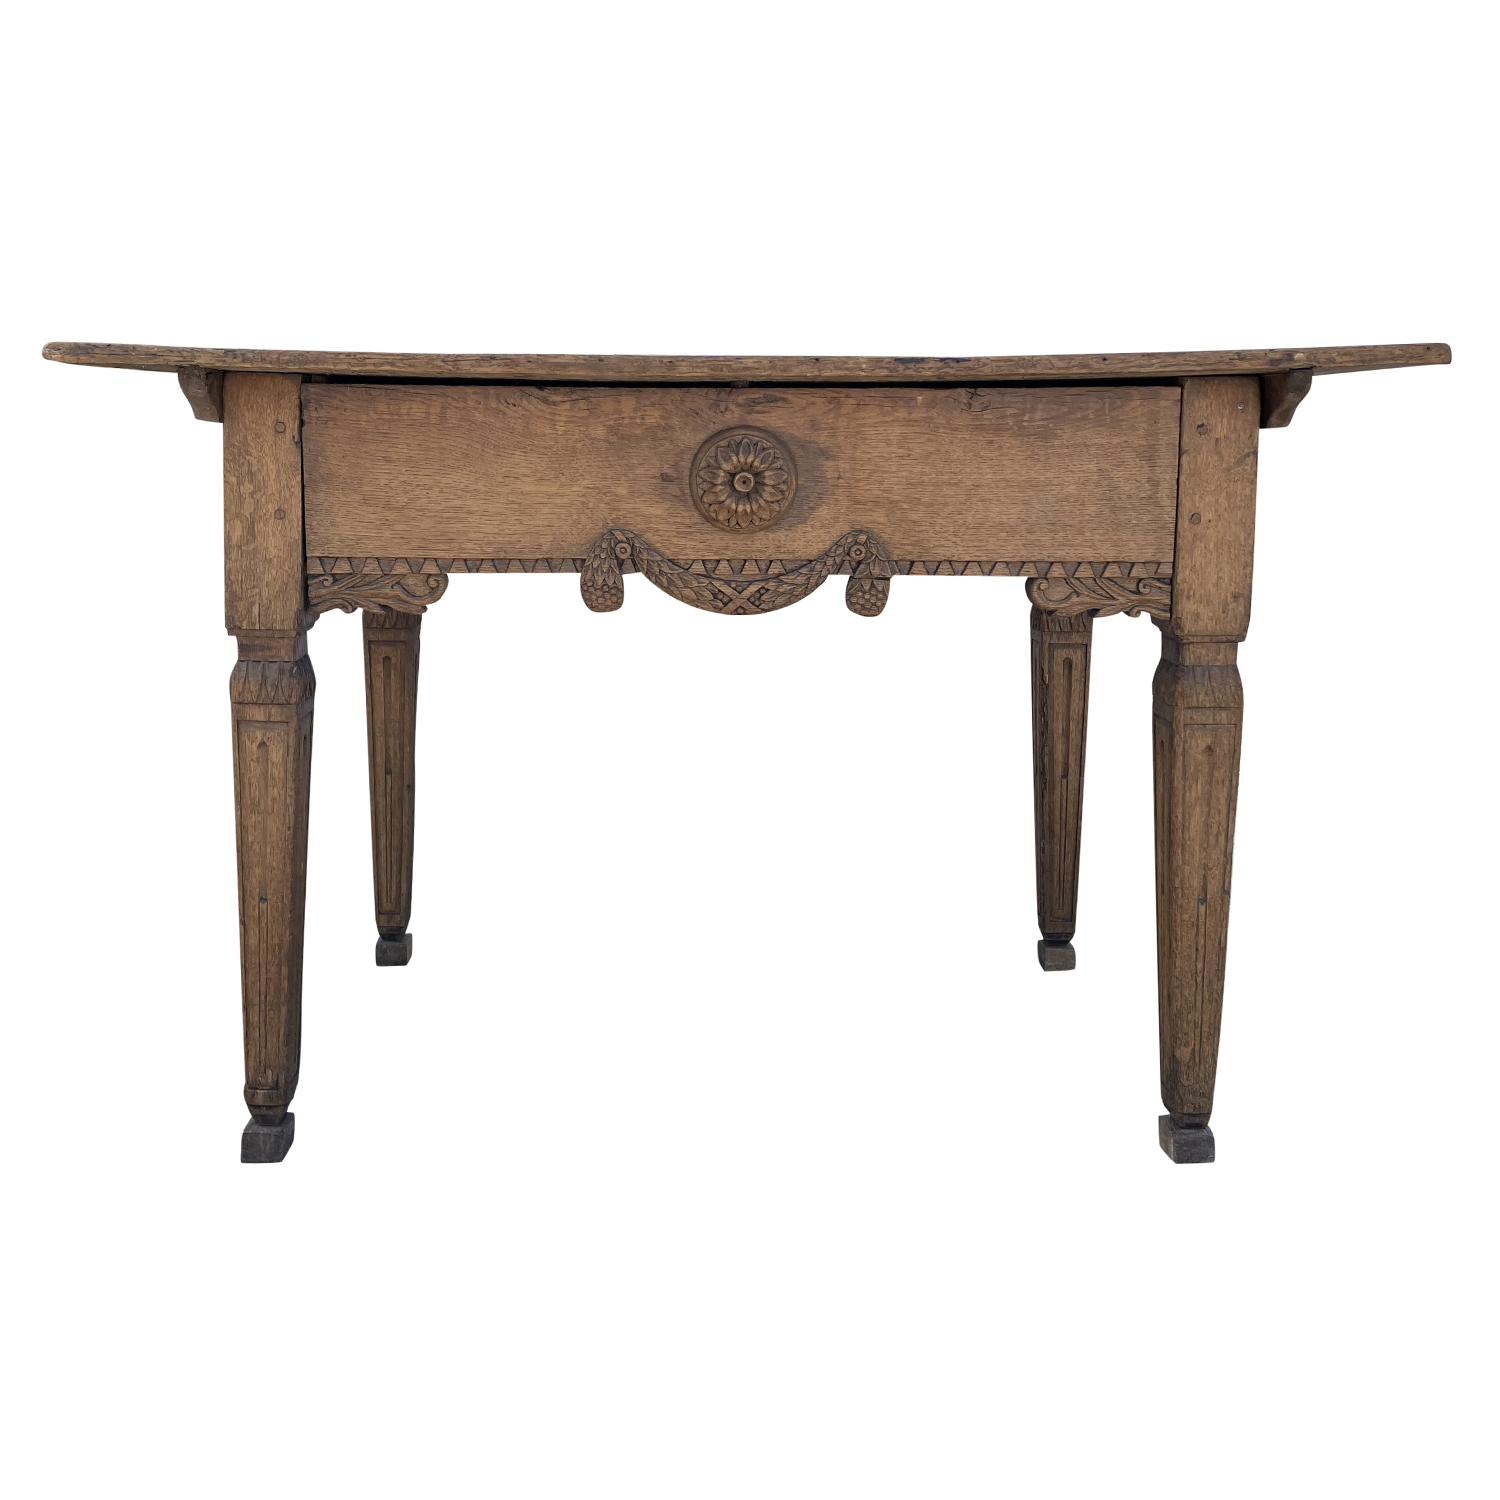 18th Century Dark-Brown French Régence Console Table – Oakwood Farm, End Table